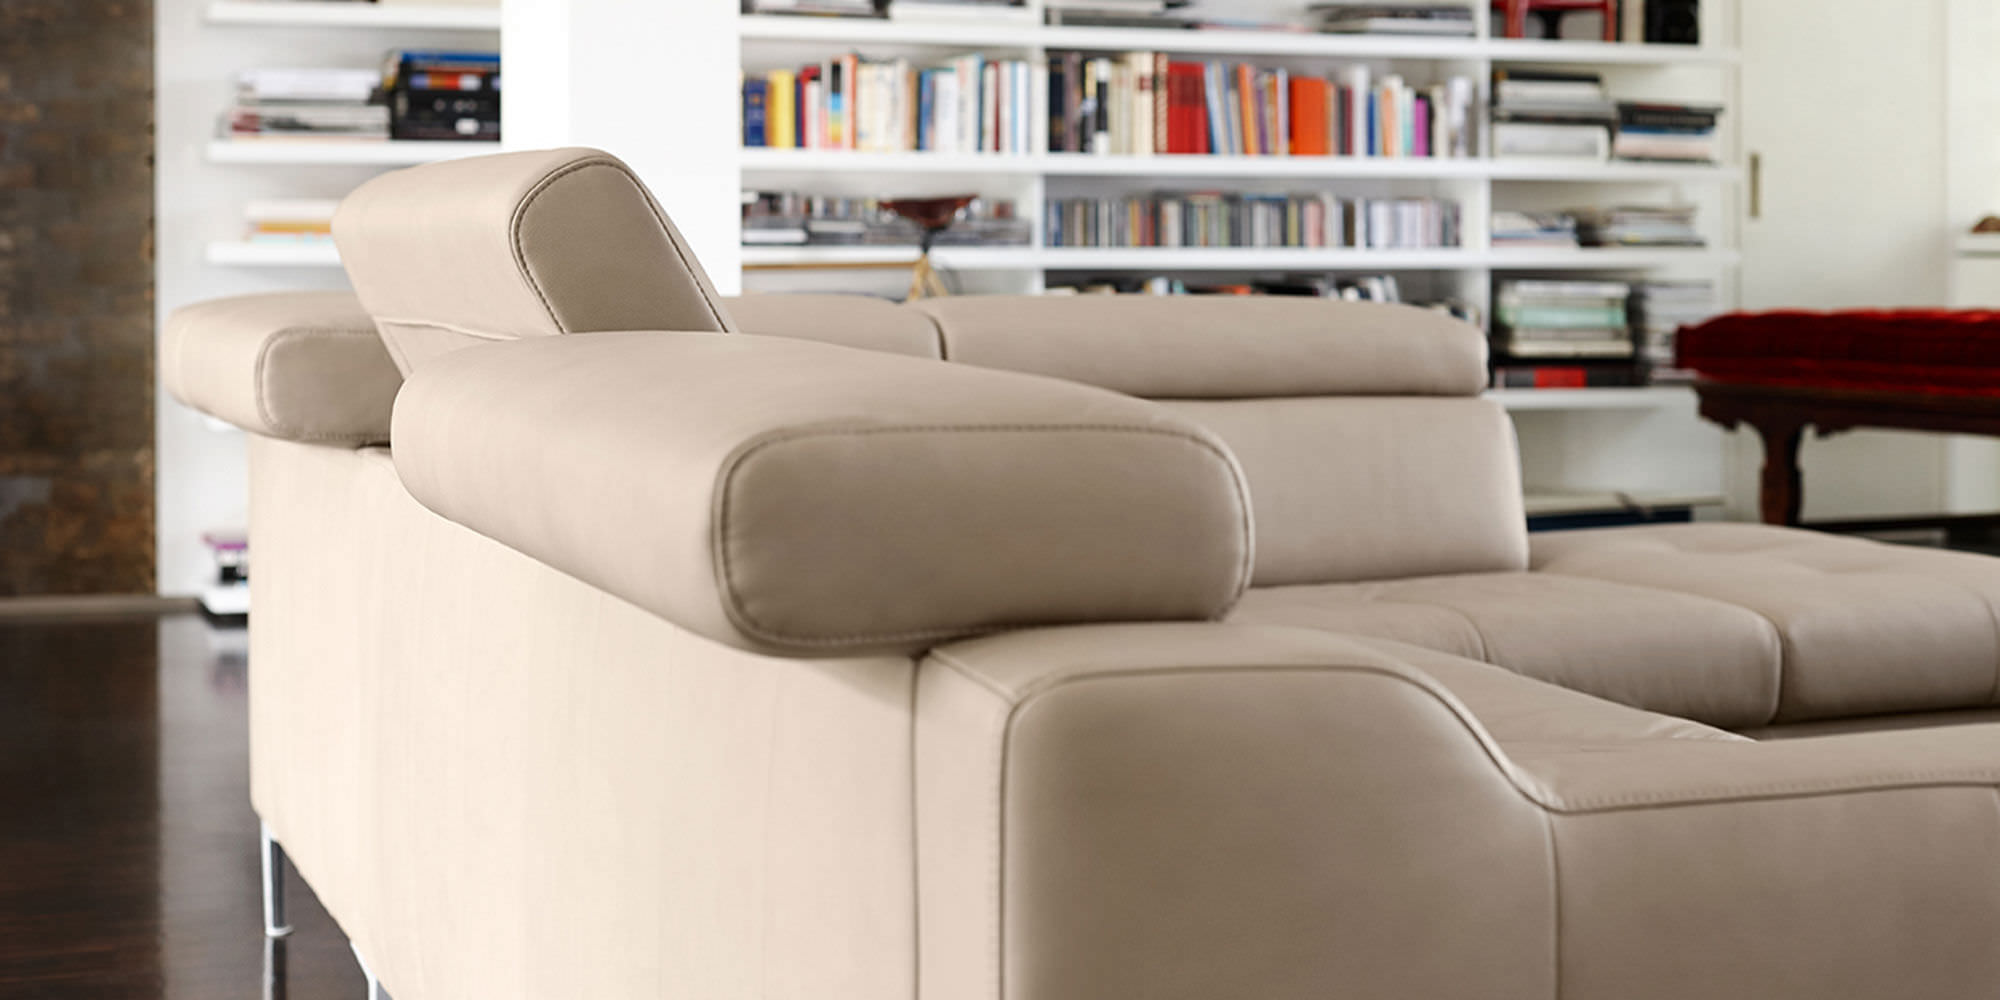 Awesome Modular Sofa Leather Seater Tyra Ewald Schillig Gmbh U Co With Flex Plus Preise